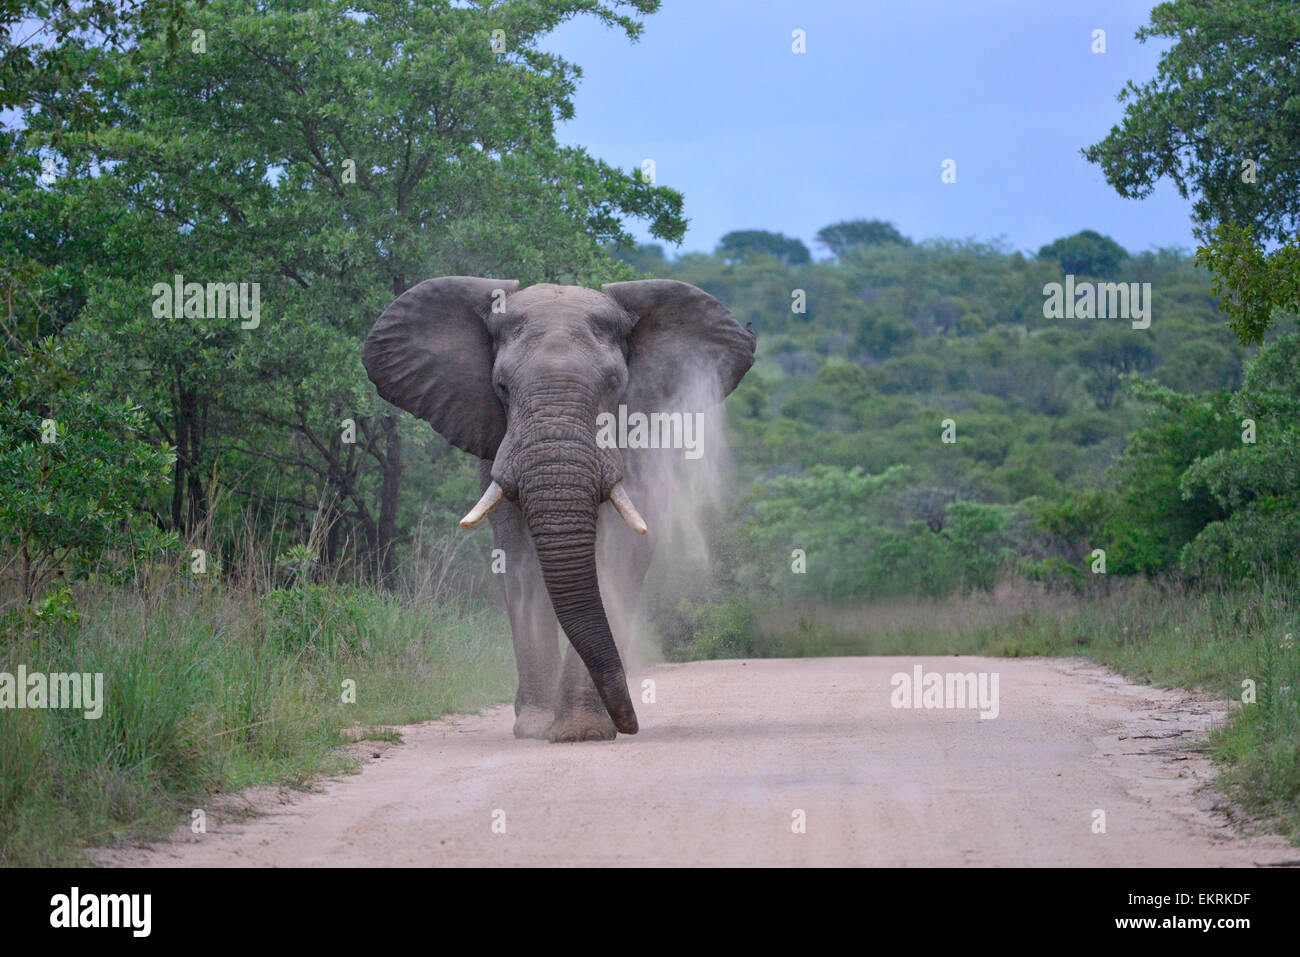 African elephant throwing up dust in dirt road, in world famous Kruger National Park, Mpumalanga, South Africa. - Stock Image